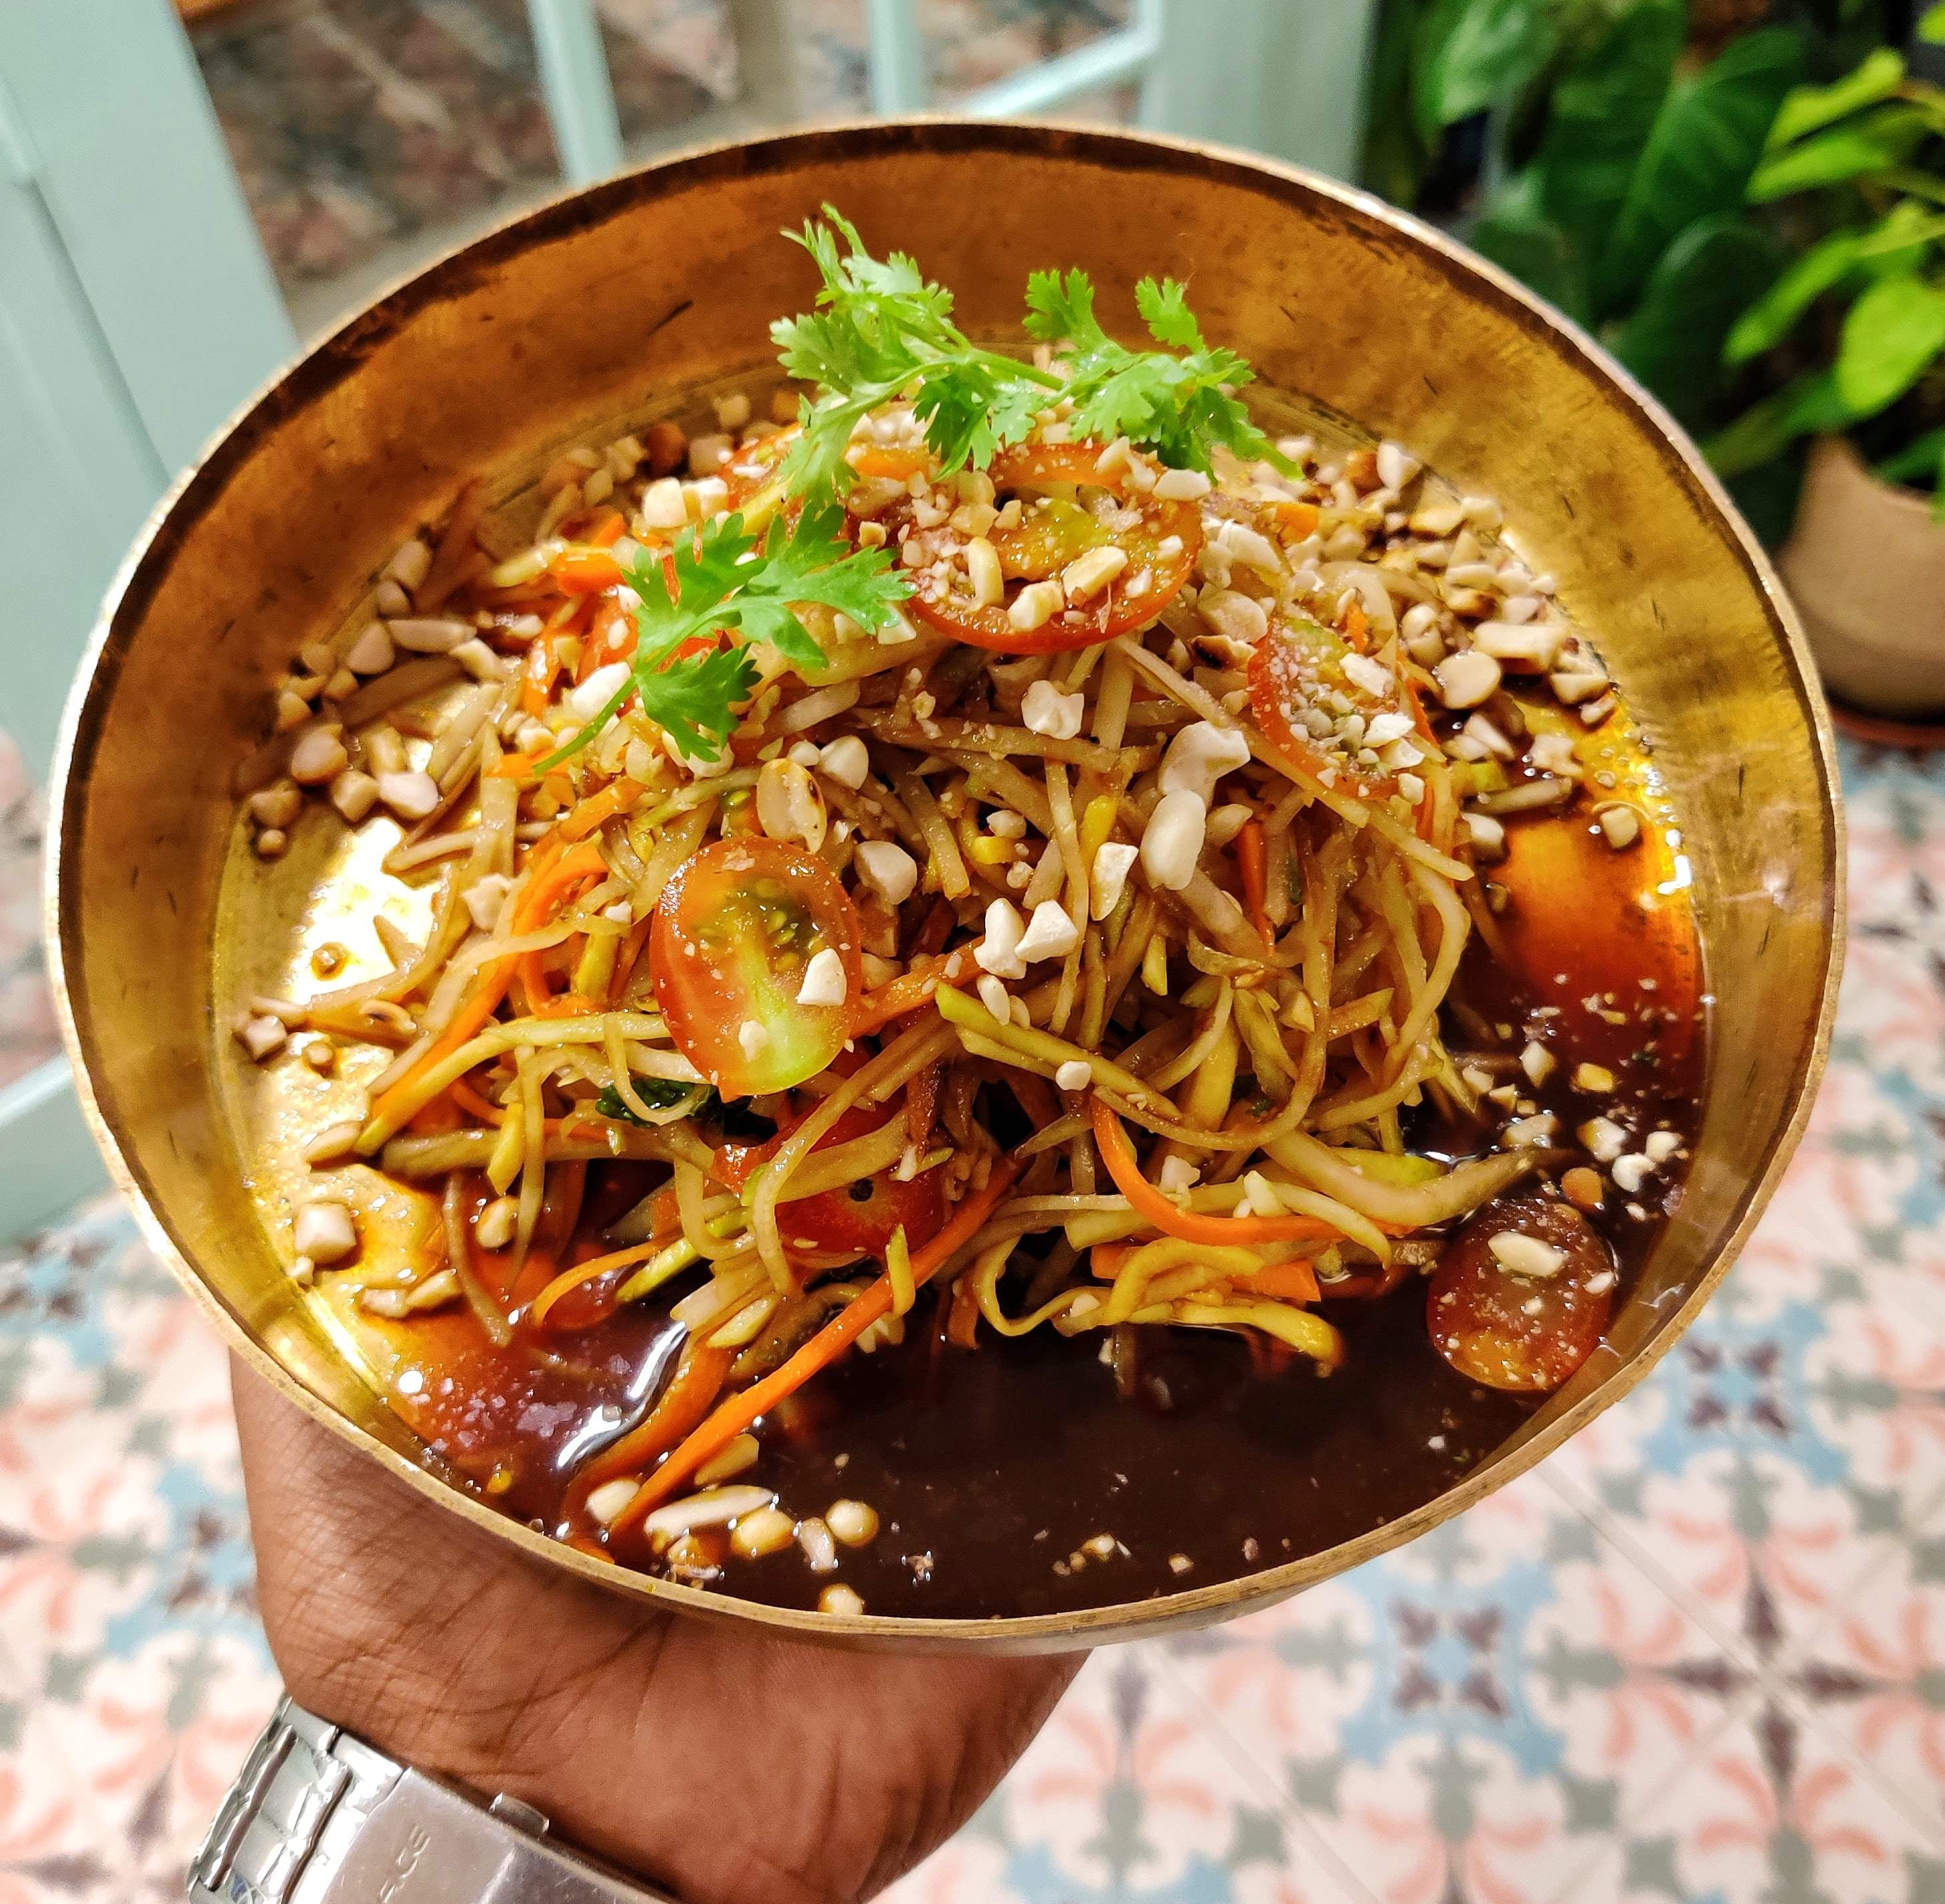 Dish,Food,Cuisine,Ingredient,Recipe,Produce,Meat,Chinese food,Thai food,Indian chinese cuisine